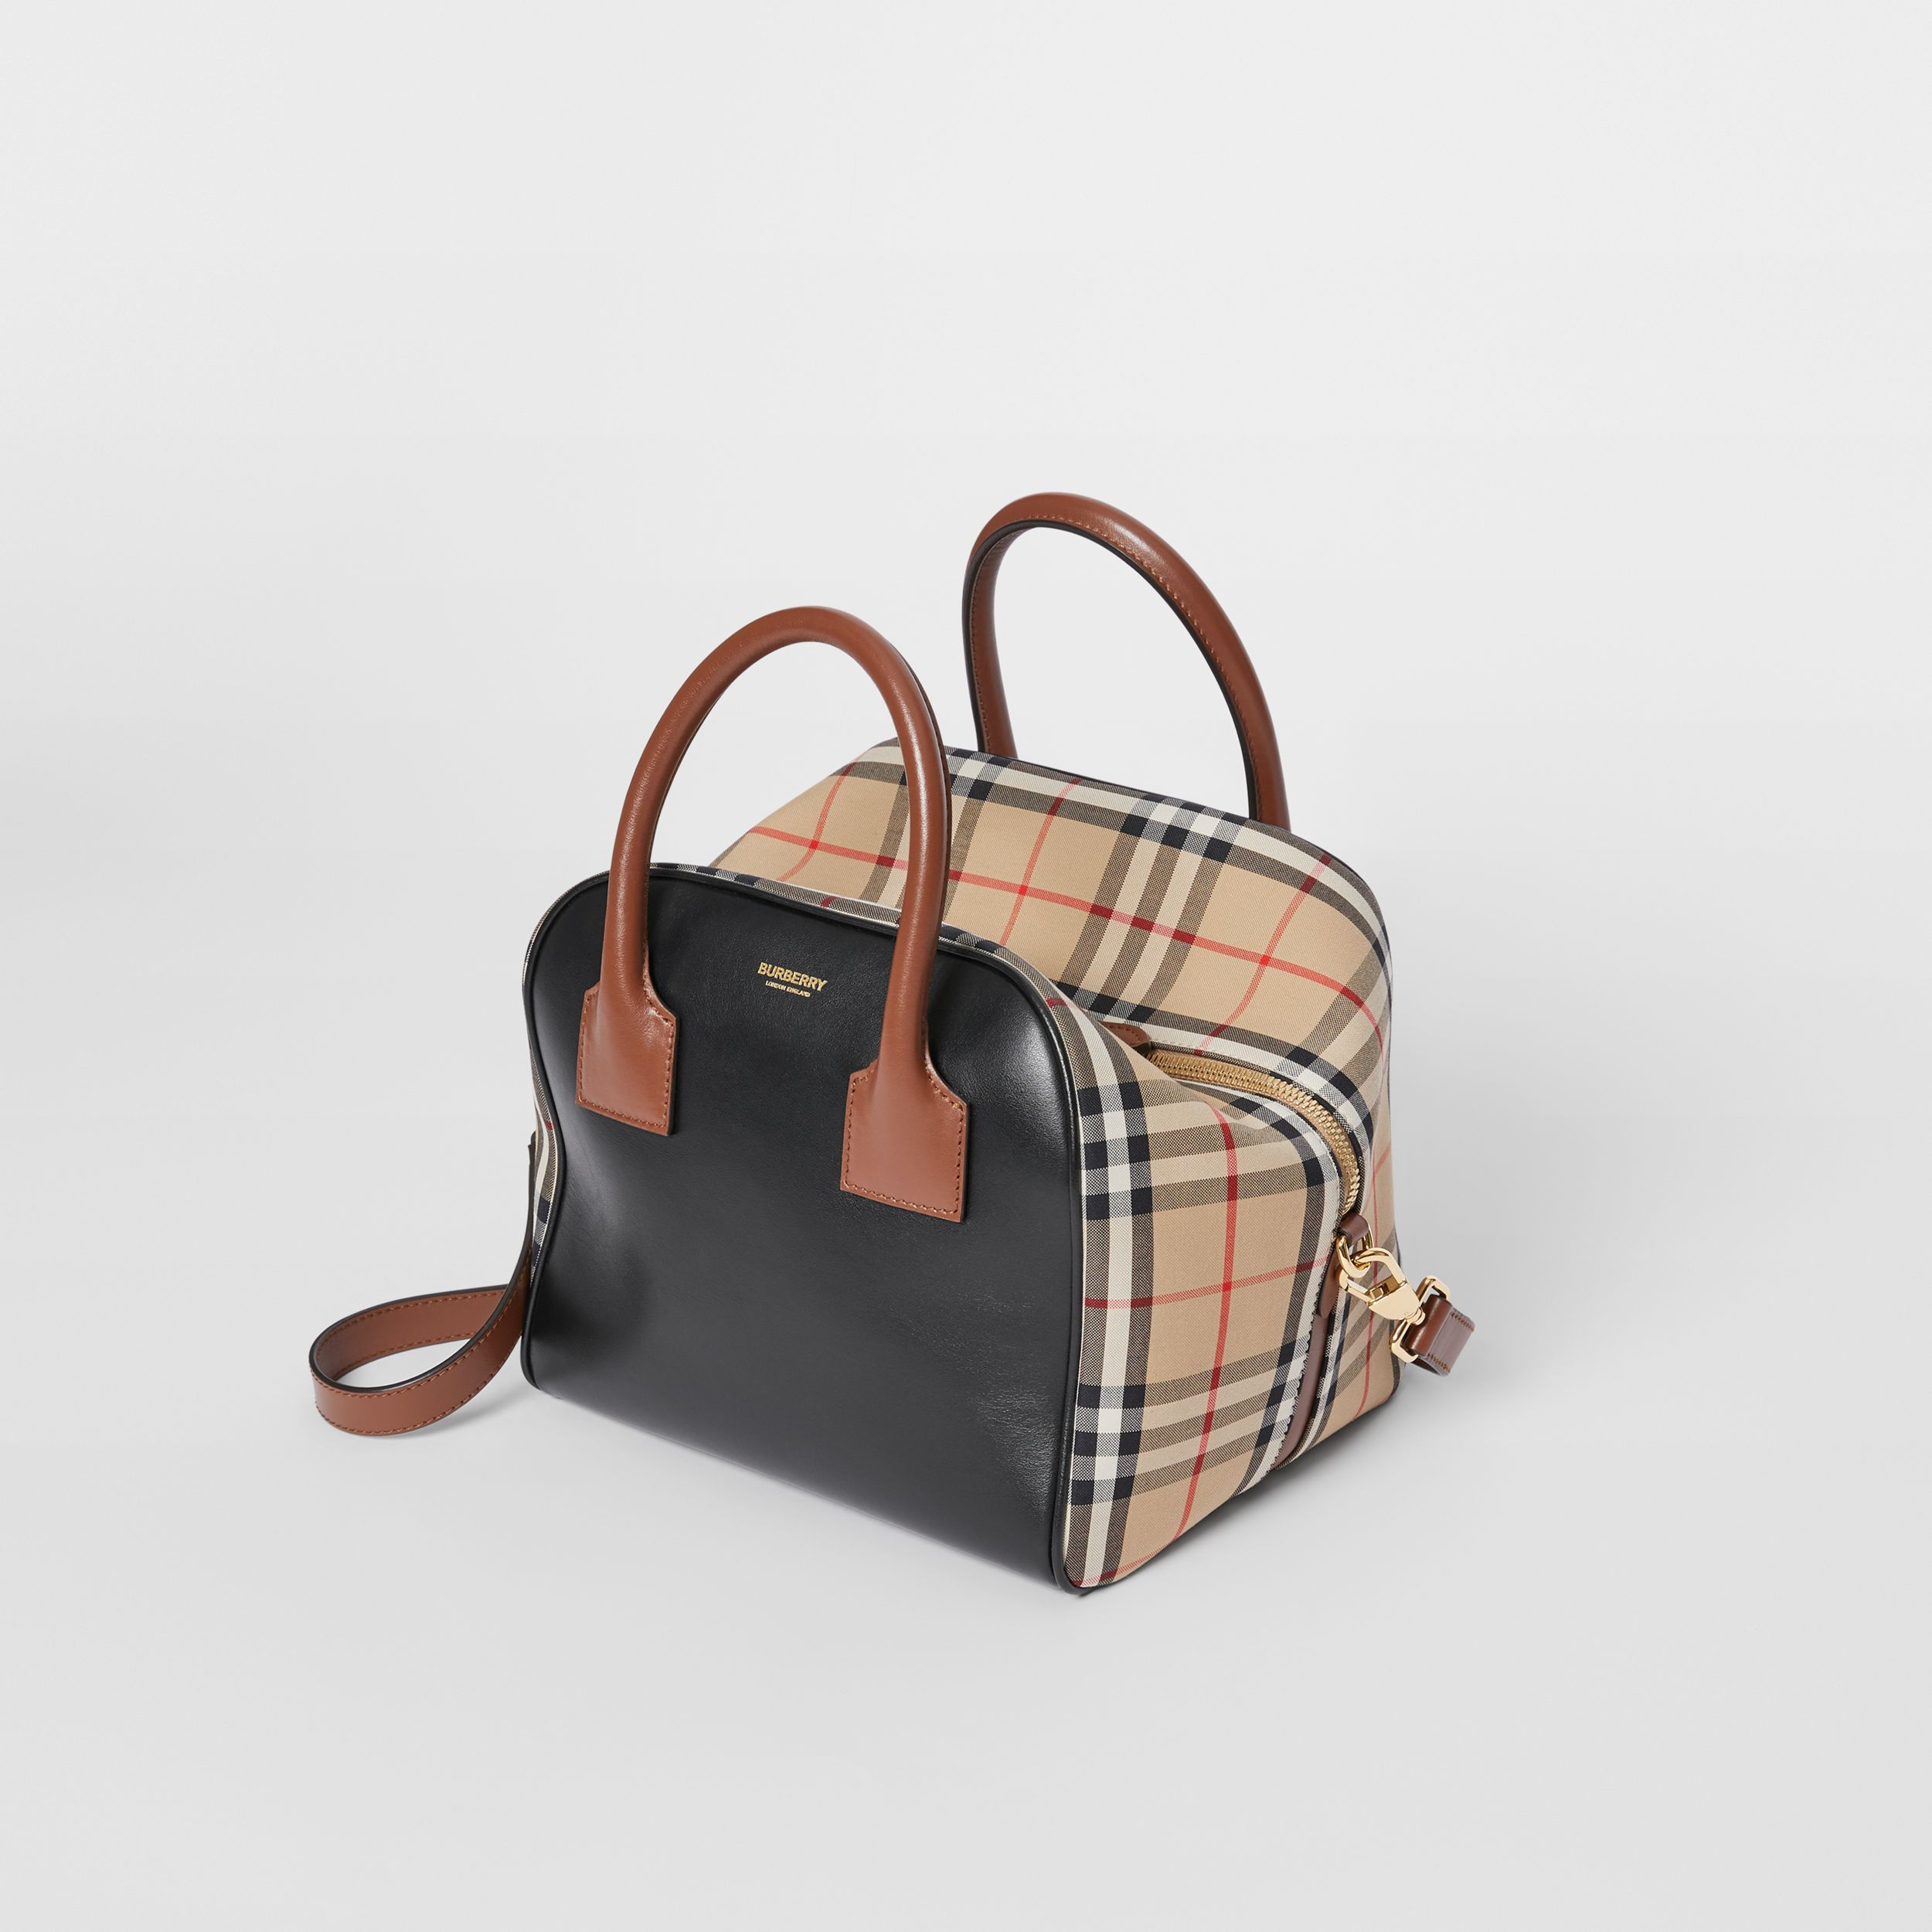 Small Leather and Vintage Check Cube Bag in Archive Beige - Women | Burberry - 4